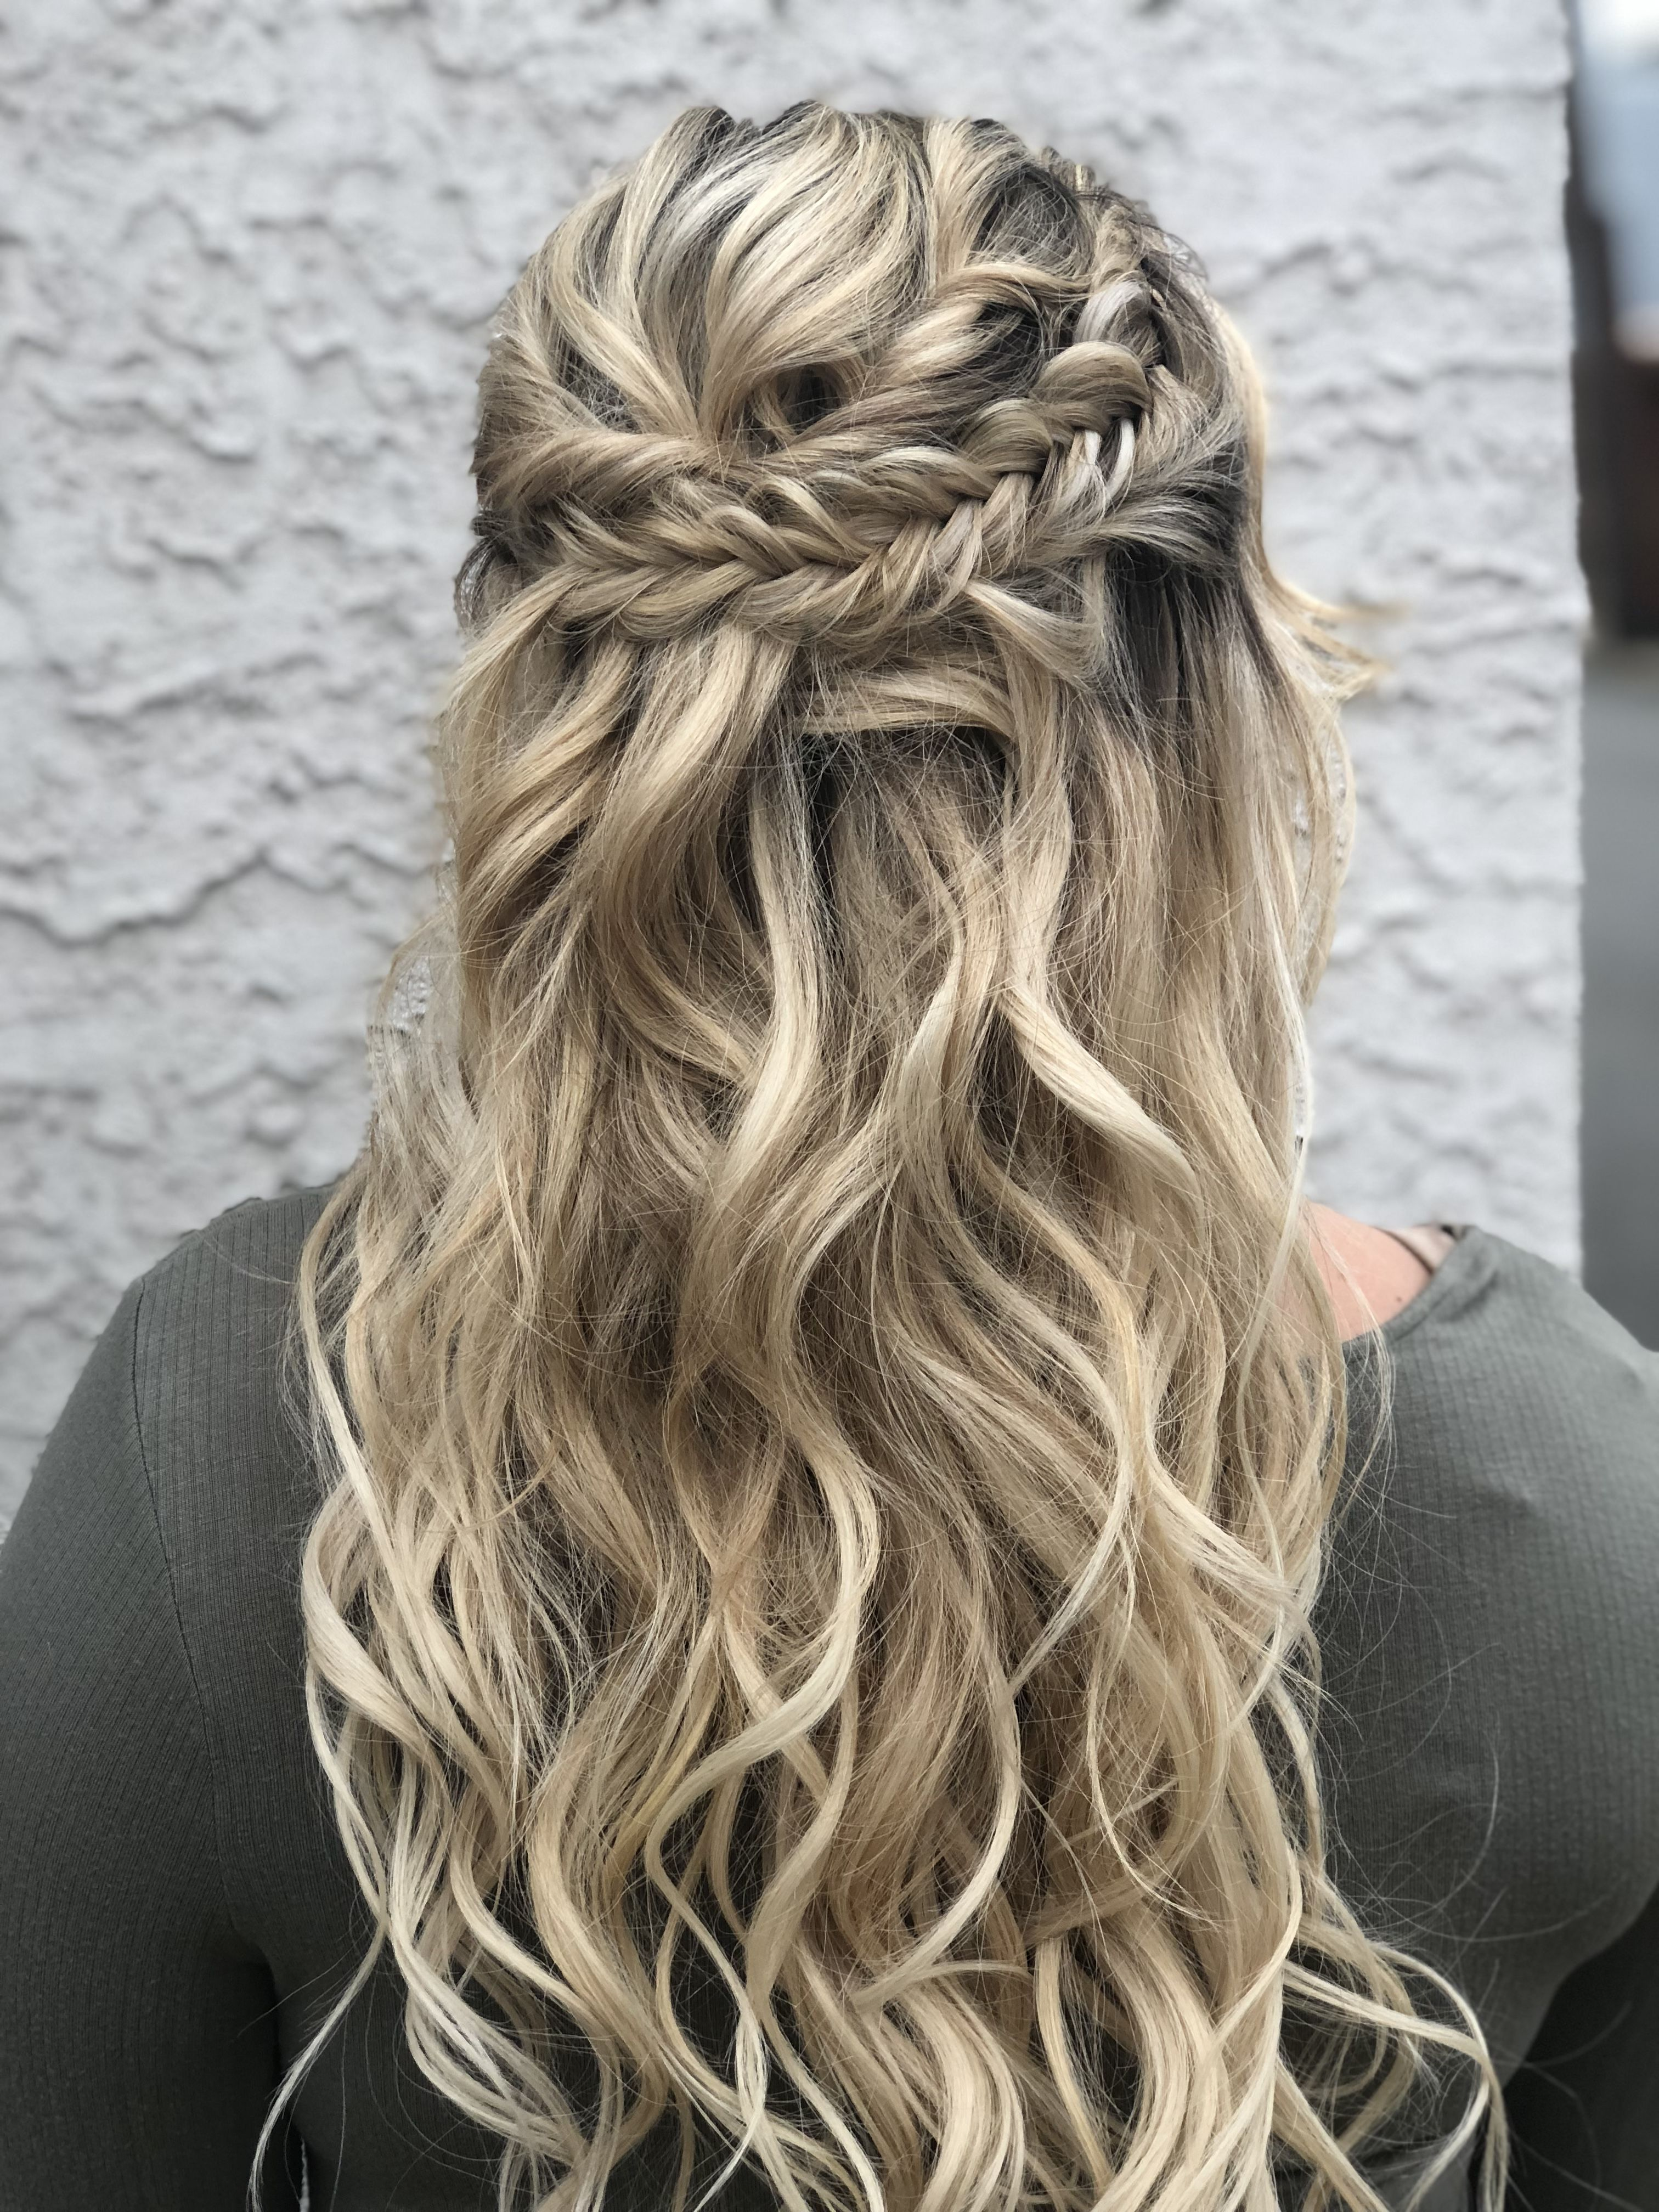 Half Up Half Down Bride Hair Braids Long Hair Half Updo Half Updo Hairstyles Bohemian Bridal Hair